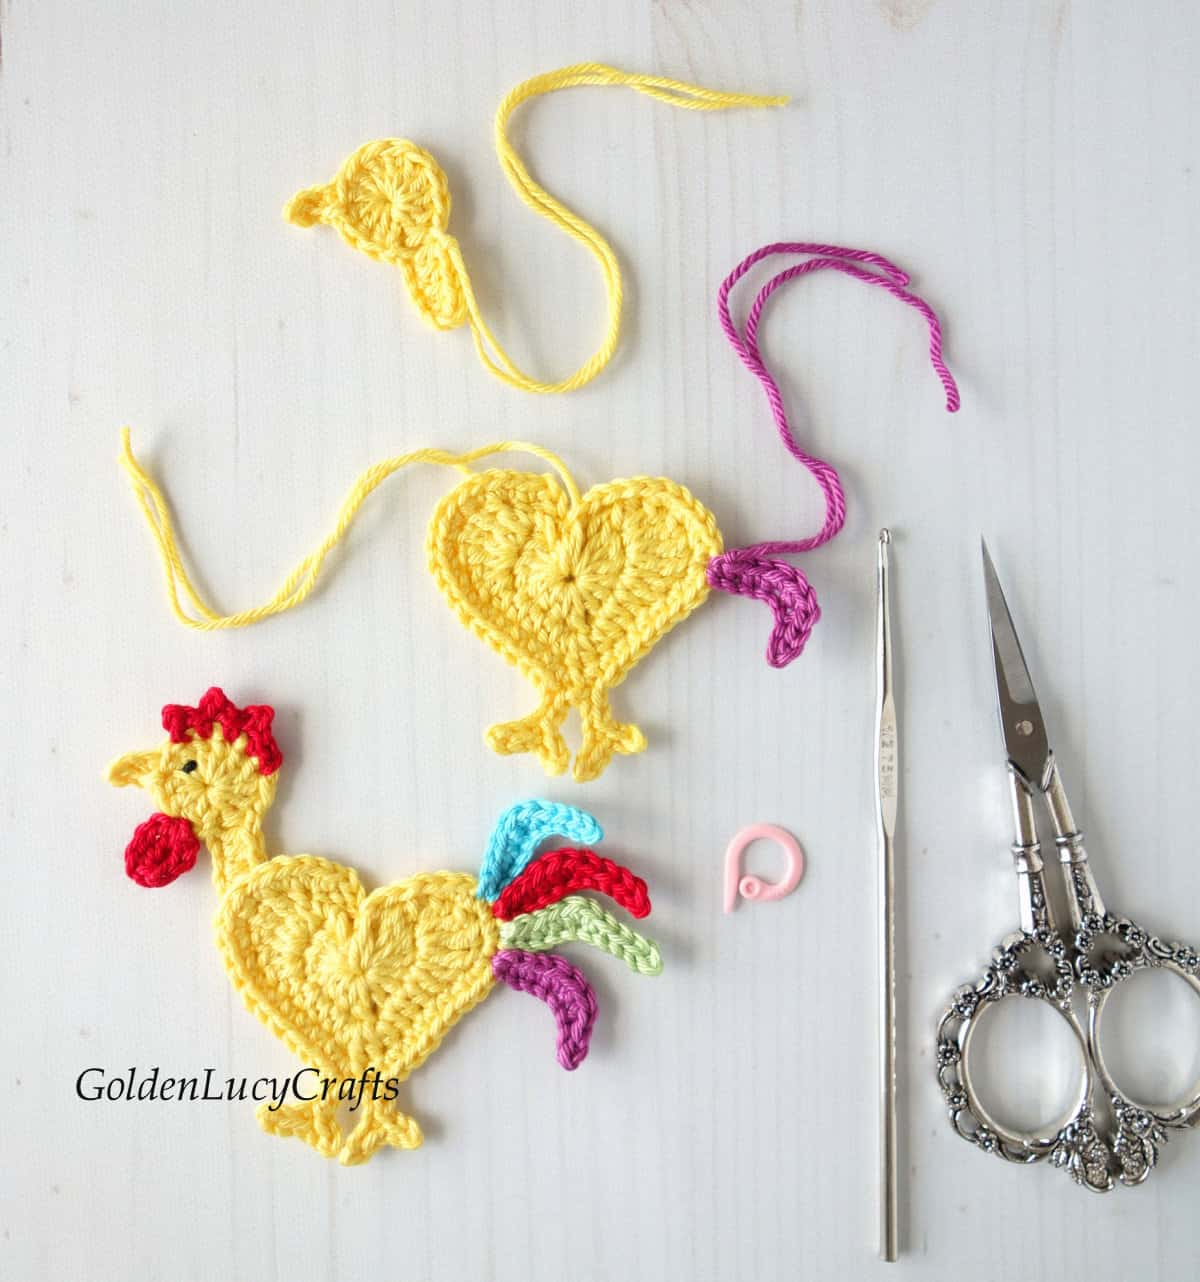 Crocheted rooster applique, parts of rooster applique, scissors, stitch marker and crochet hook.